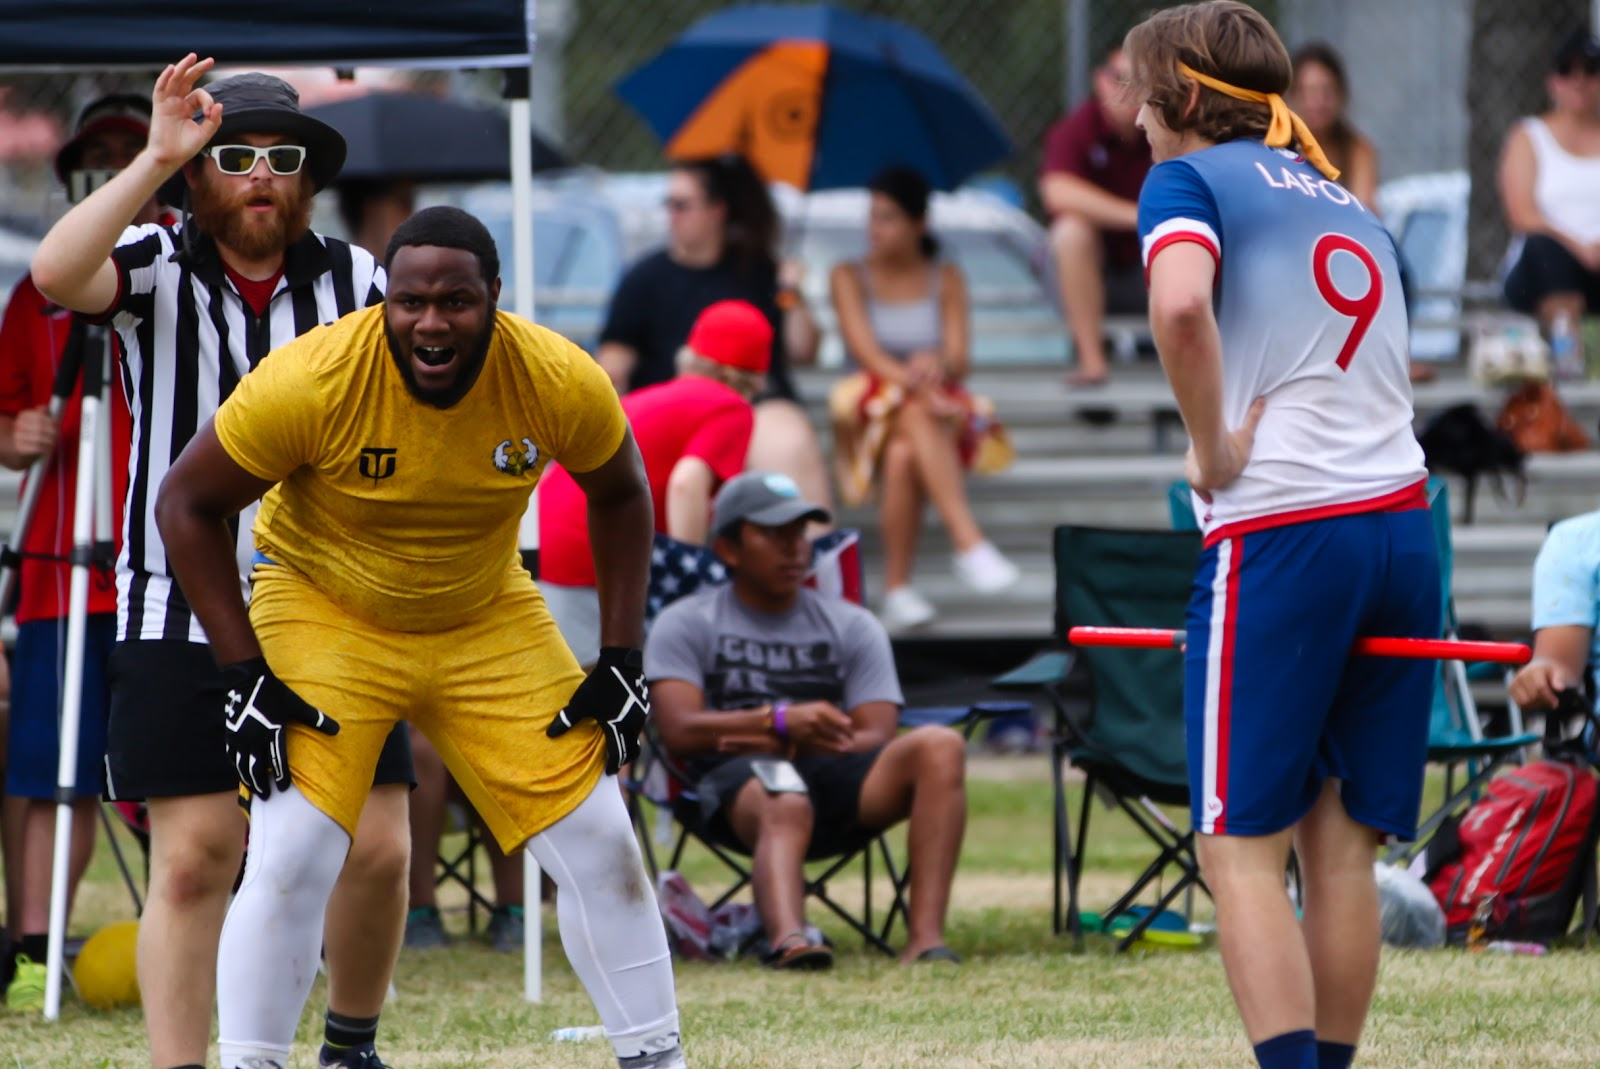 A Closer Look At Kansas City S Major League Quidditch Team